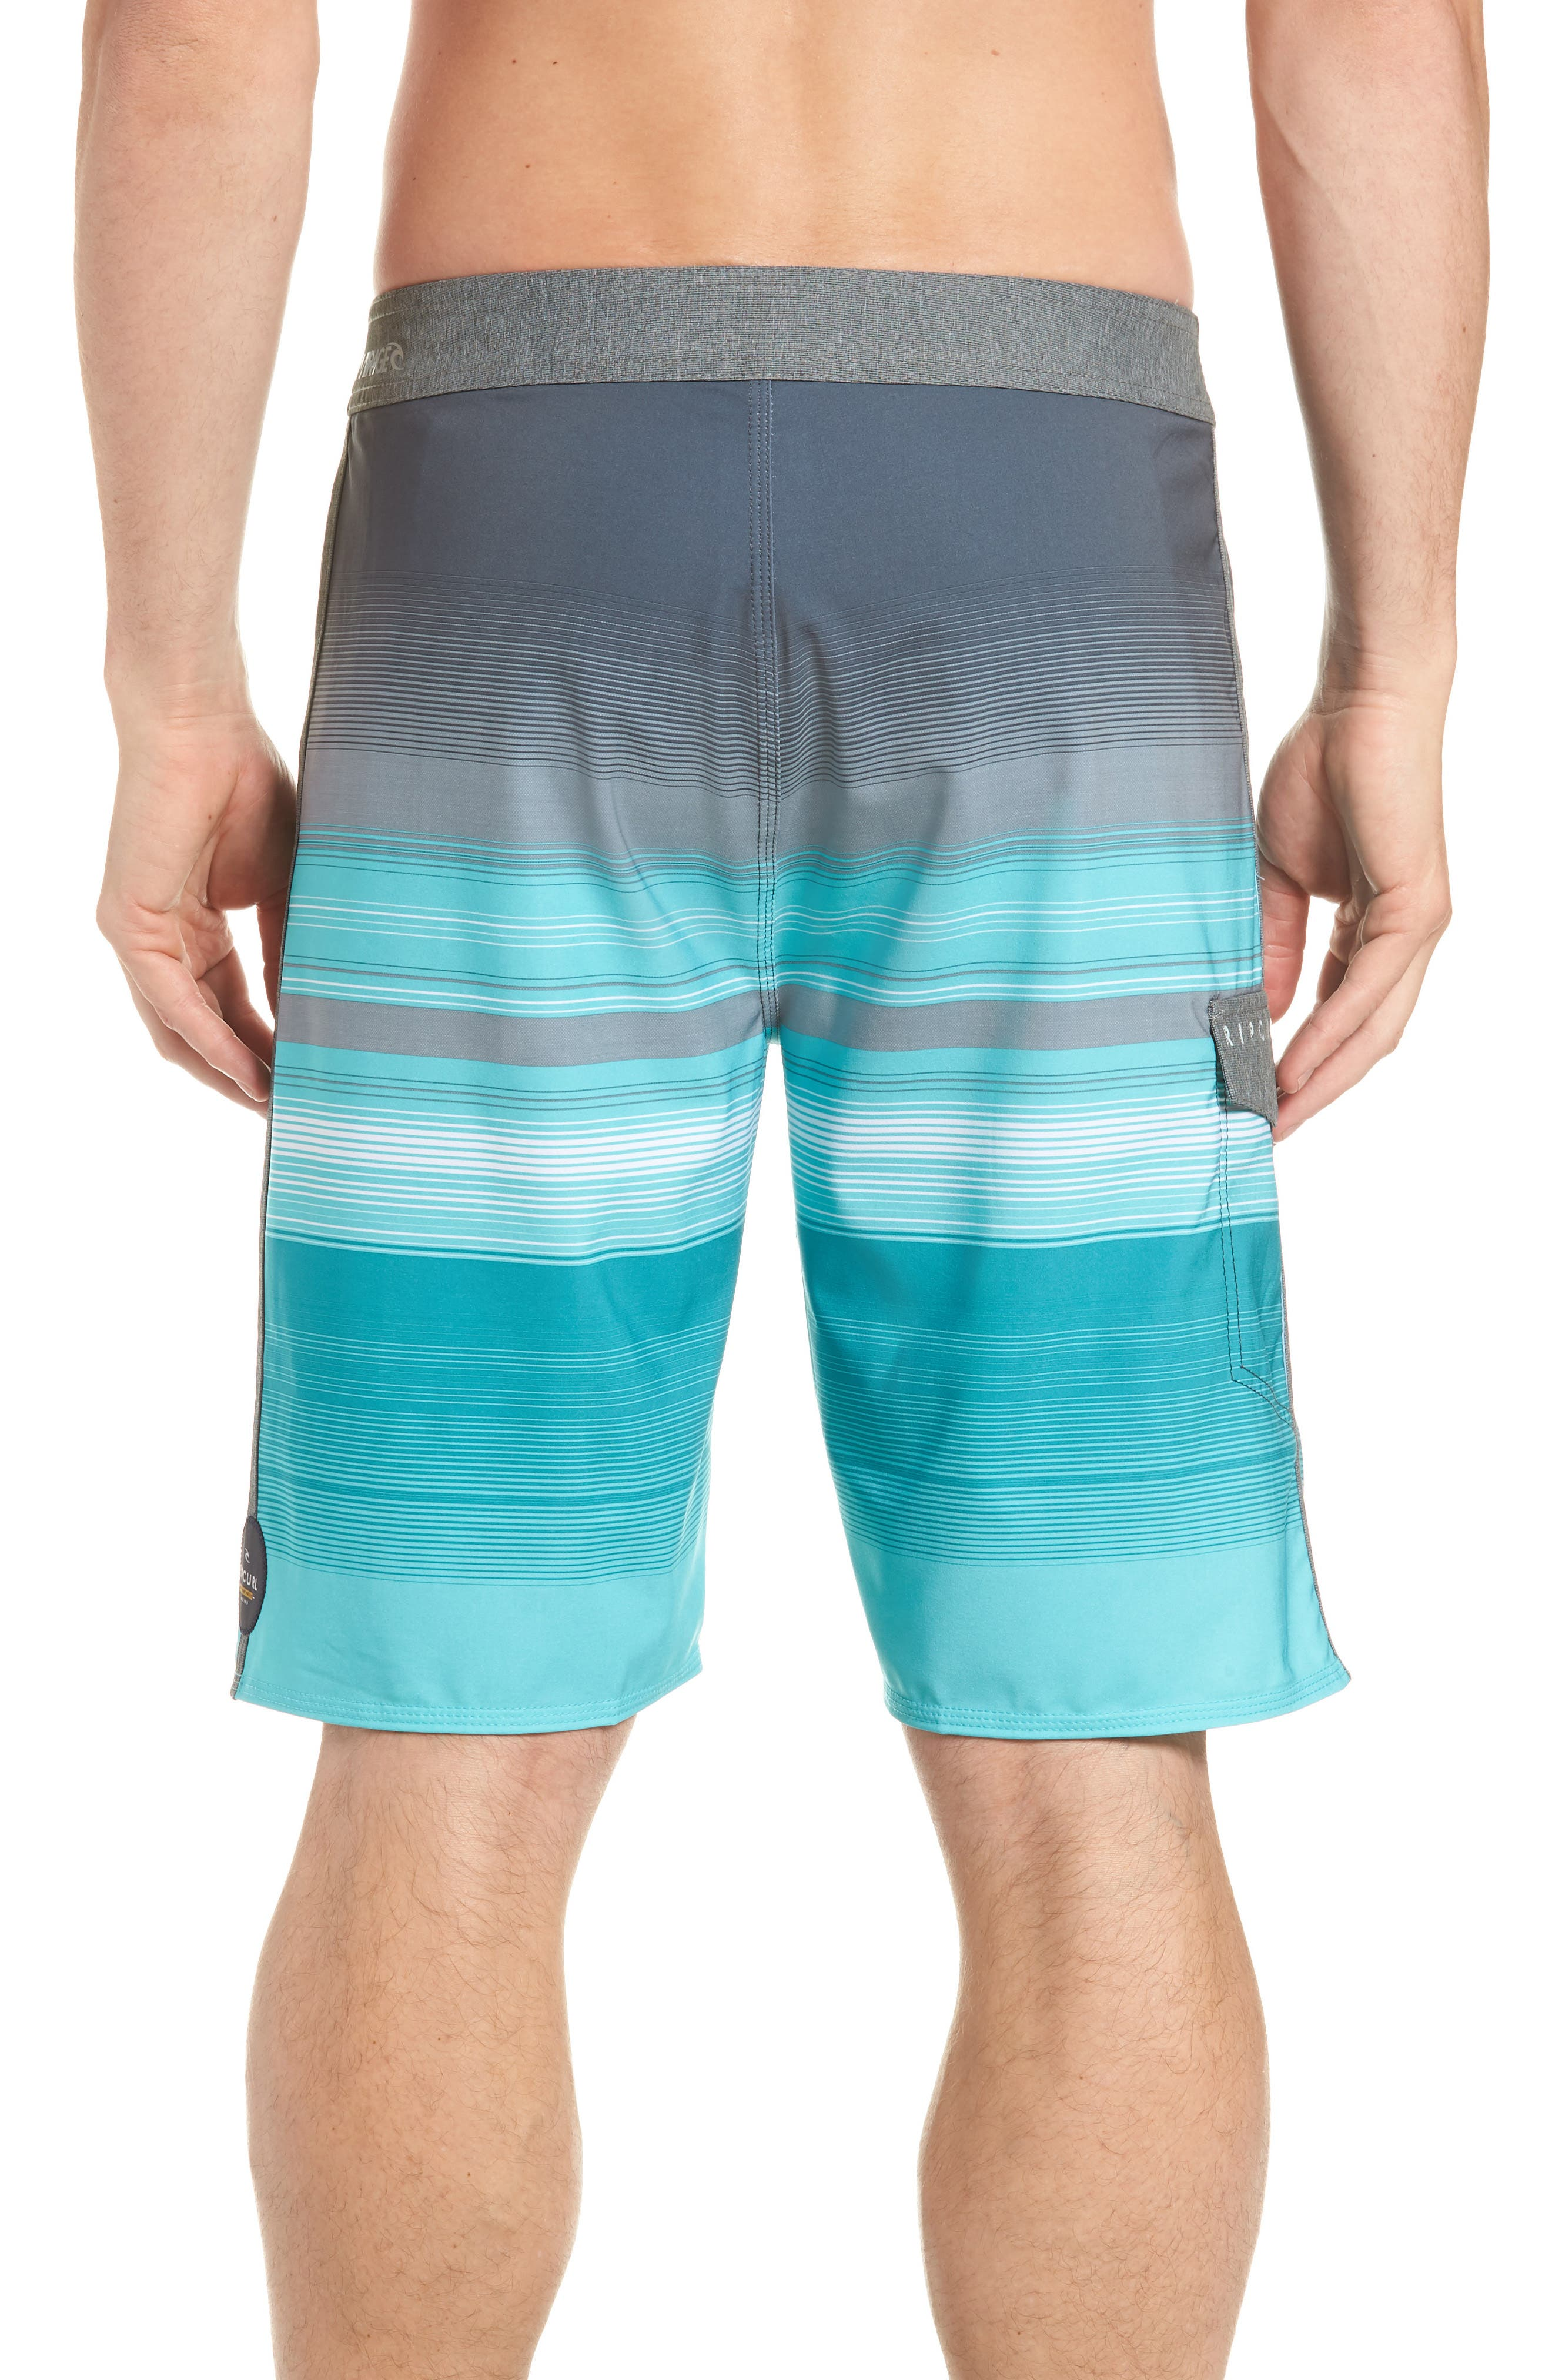 Mirage Accelerate Board Shorts,                             Alternate thumbnail 2, color,                             443